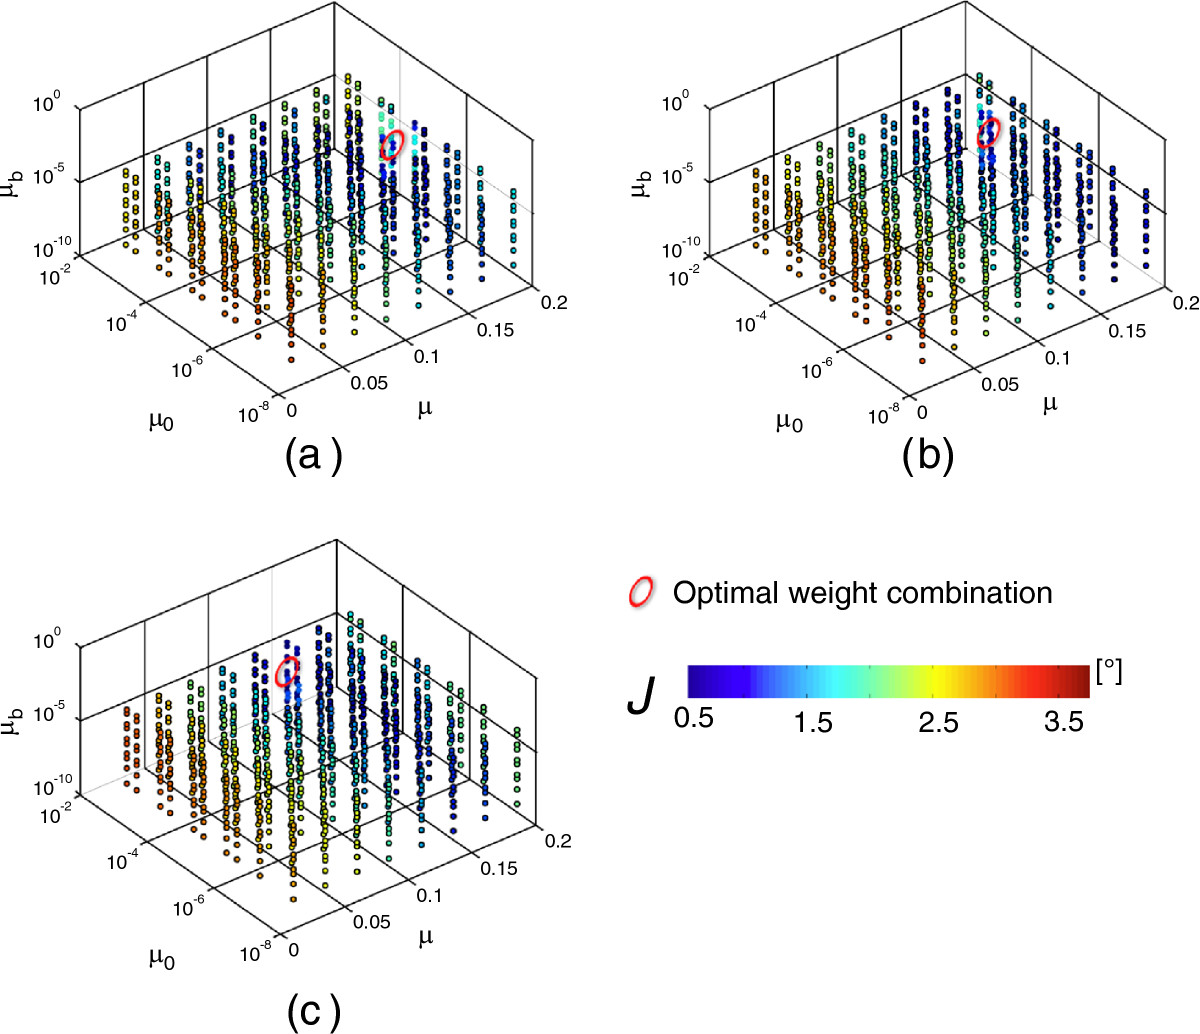 http://static-content.springer.com/image/art%3A10.1186%2F1743-0003-10-29/MediaObjects/12984_2012_Article_443_Fig4_HTML.jpg